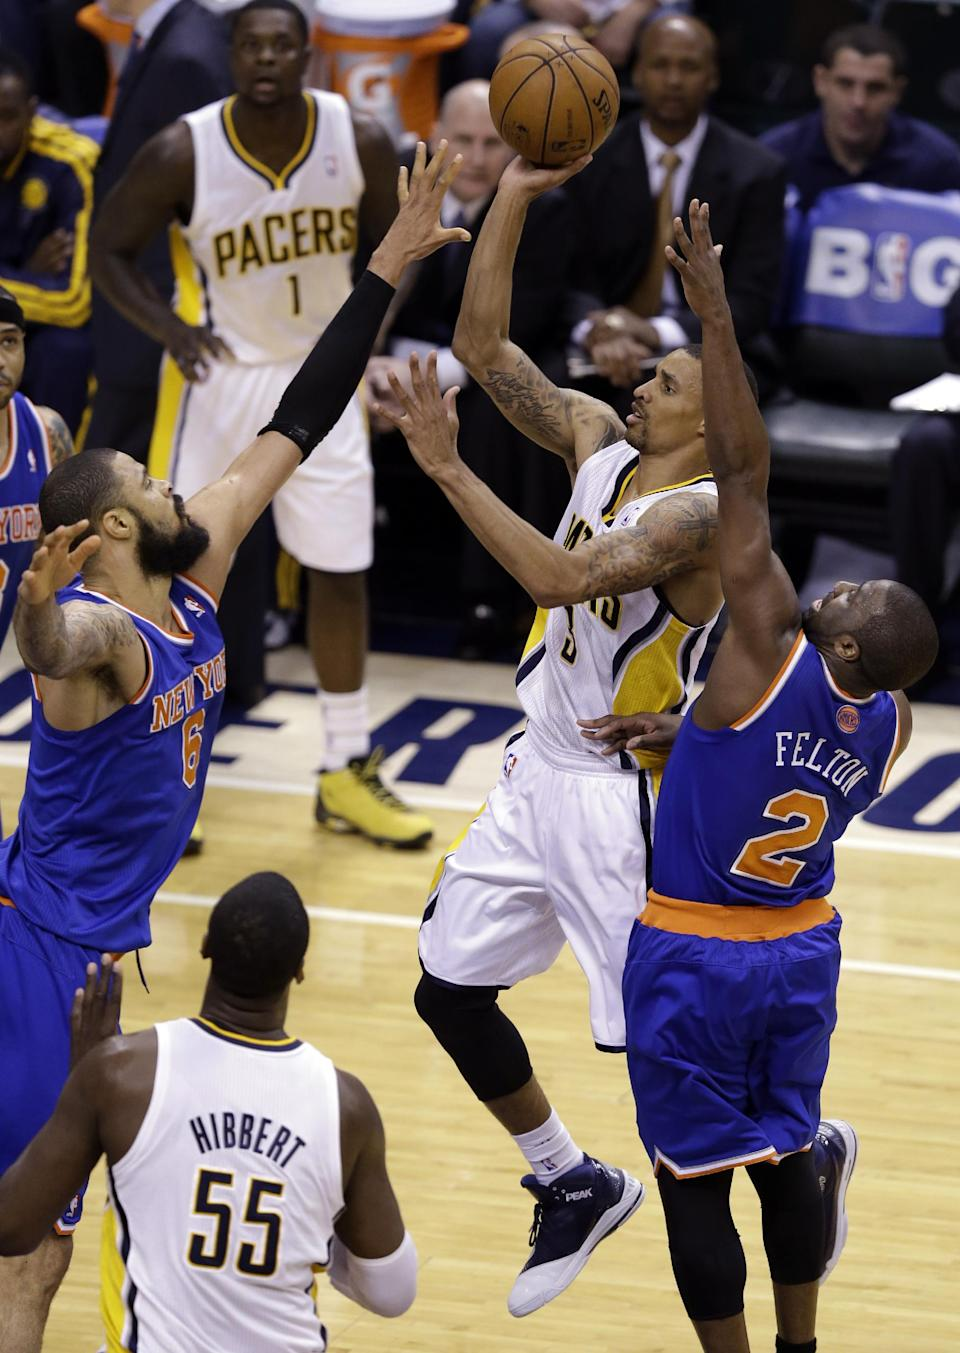 Indiana Pacers guard George Hill shoots between New York Knicks center Tyson Chandler, left, and guard Raymond Felton during the first half of Game 4 of the Eastern Conference semifinal NBA basketball playoff series, in Indianapolis on Tuesday, May 14, 2013. (AP Photo/Michael Conroy)